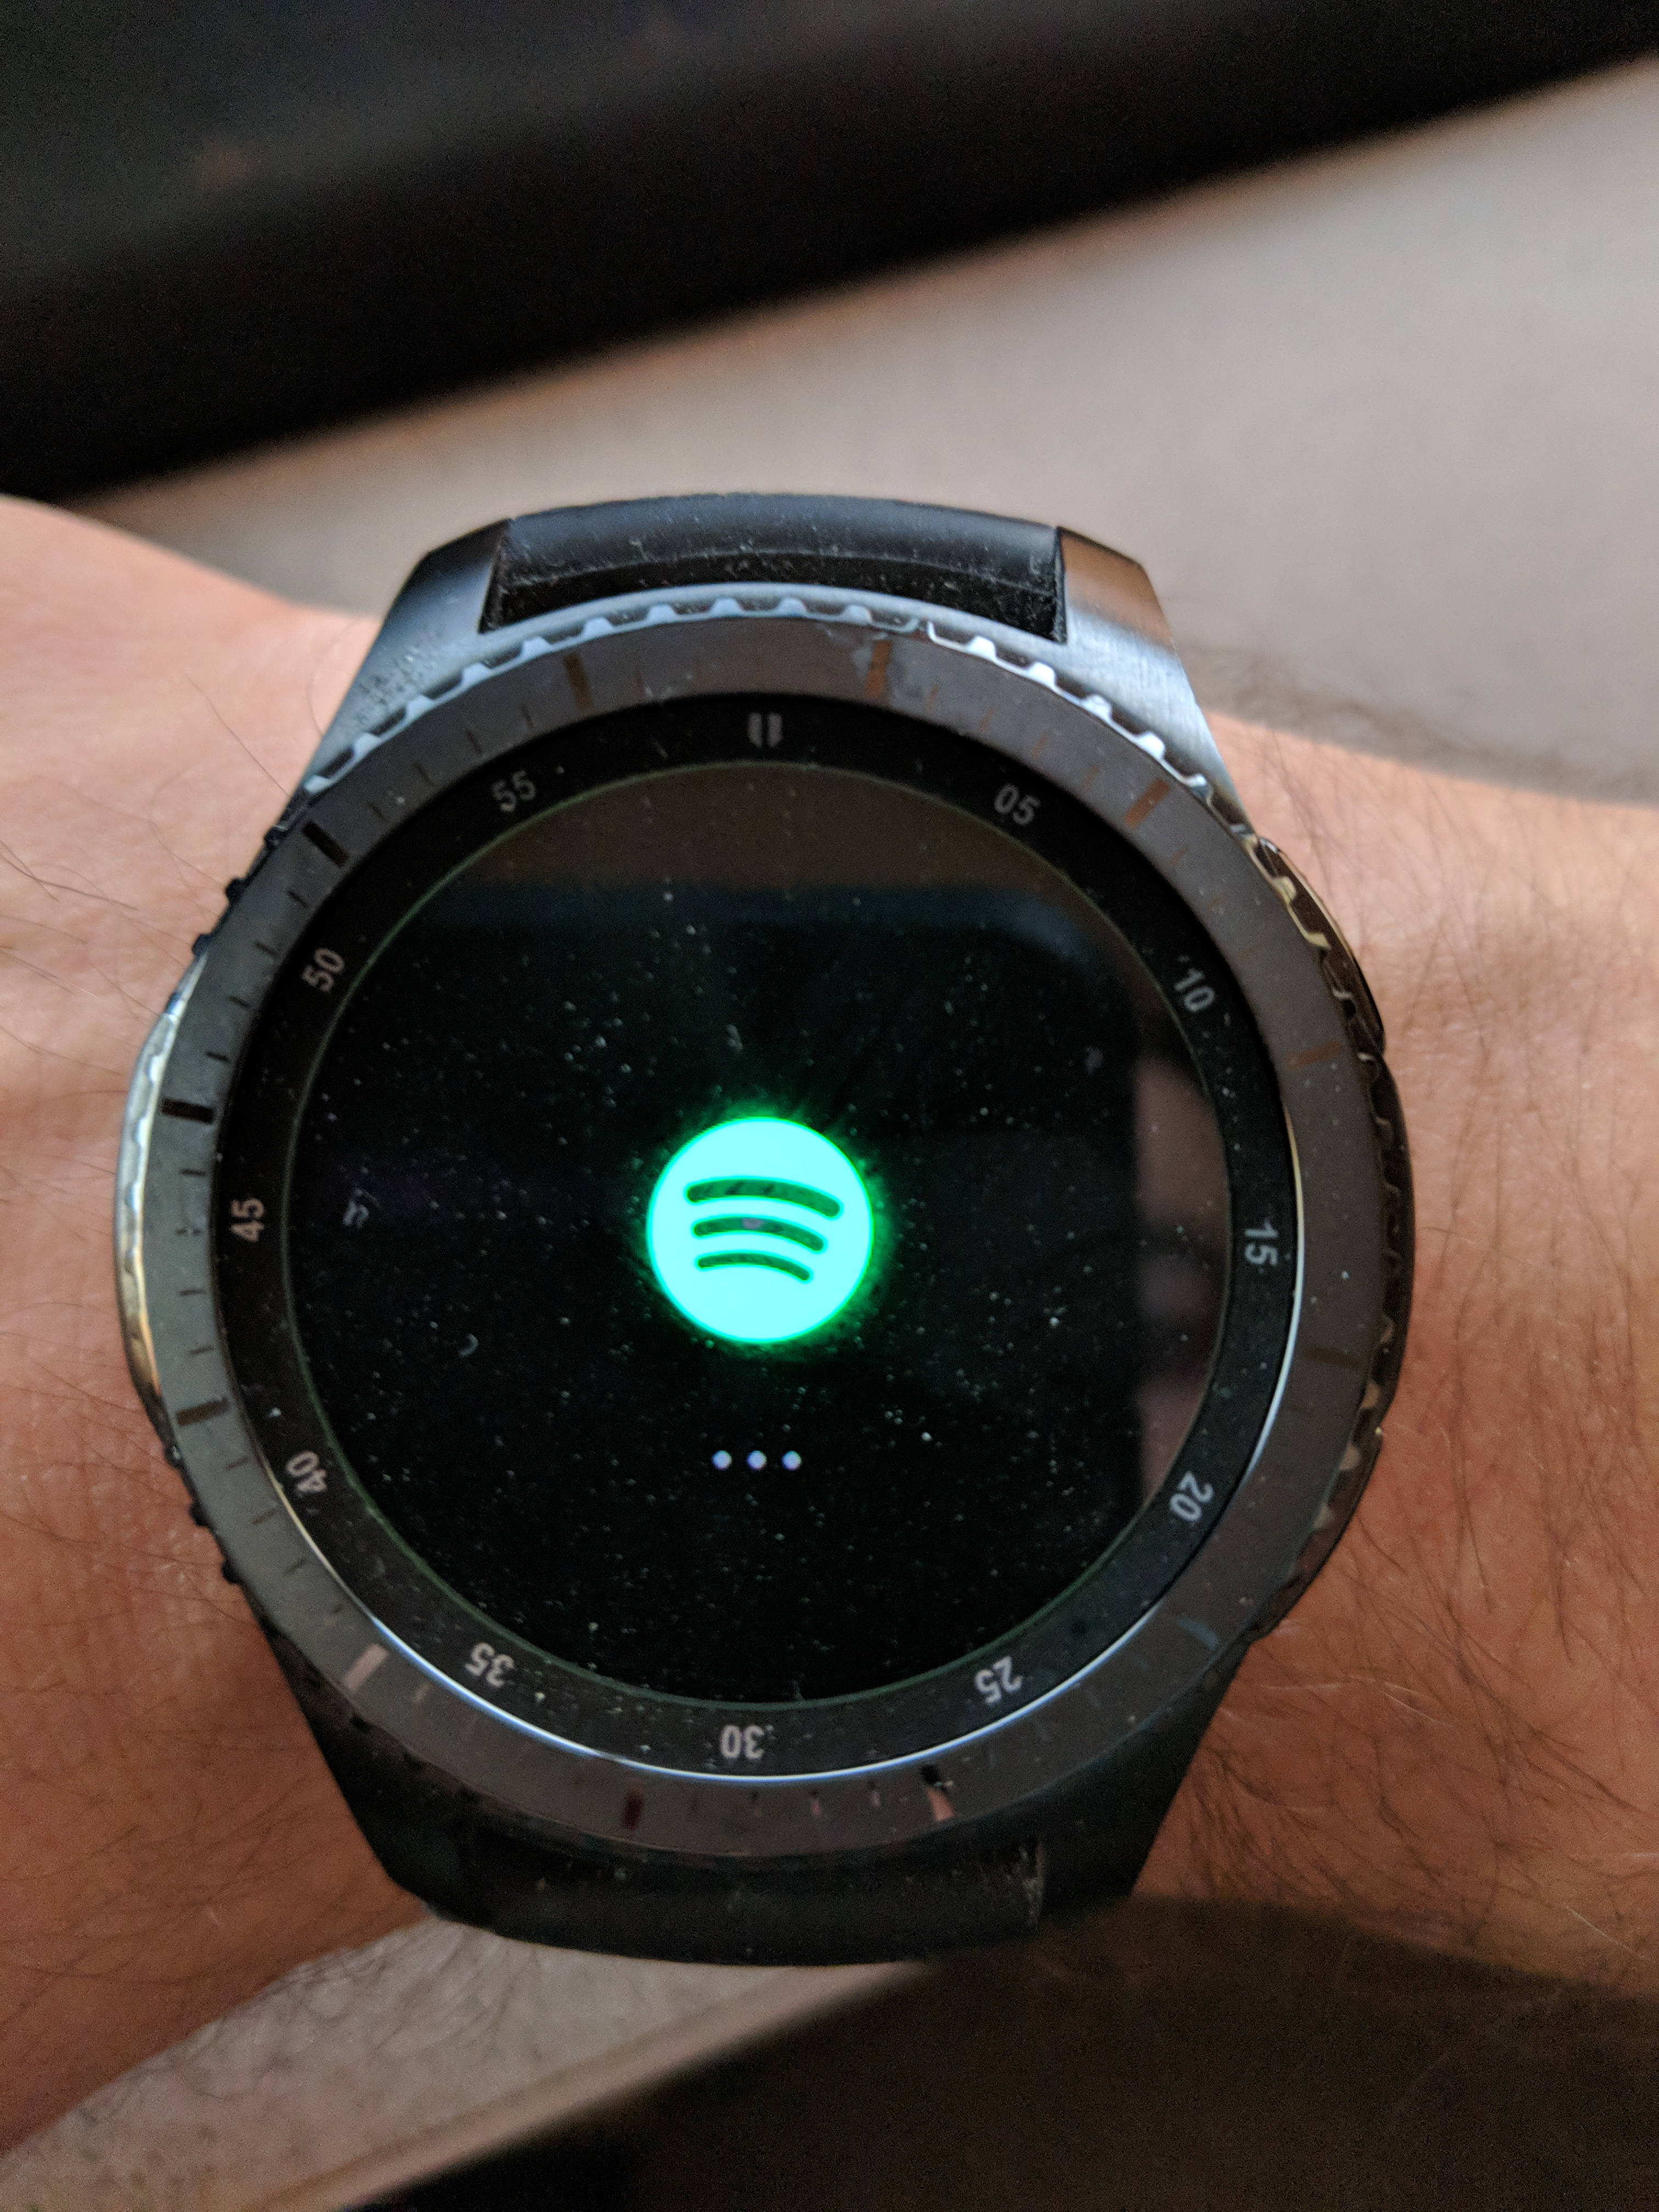 Samsung Gear S3 Endless loading screen - The Spotify Community